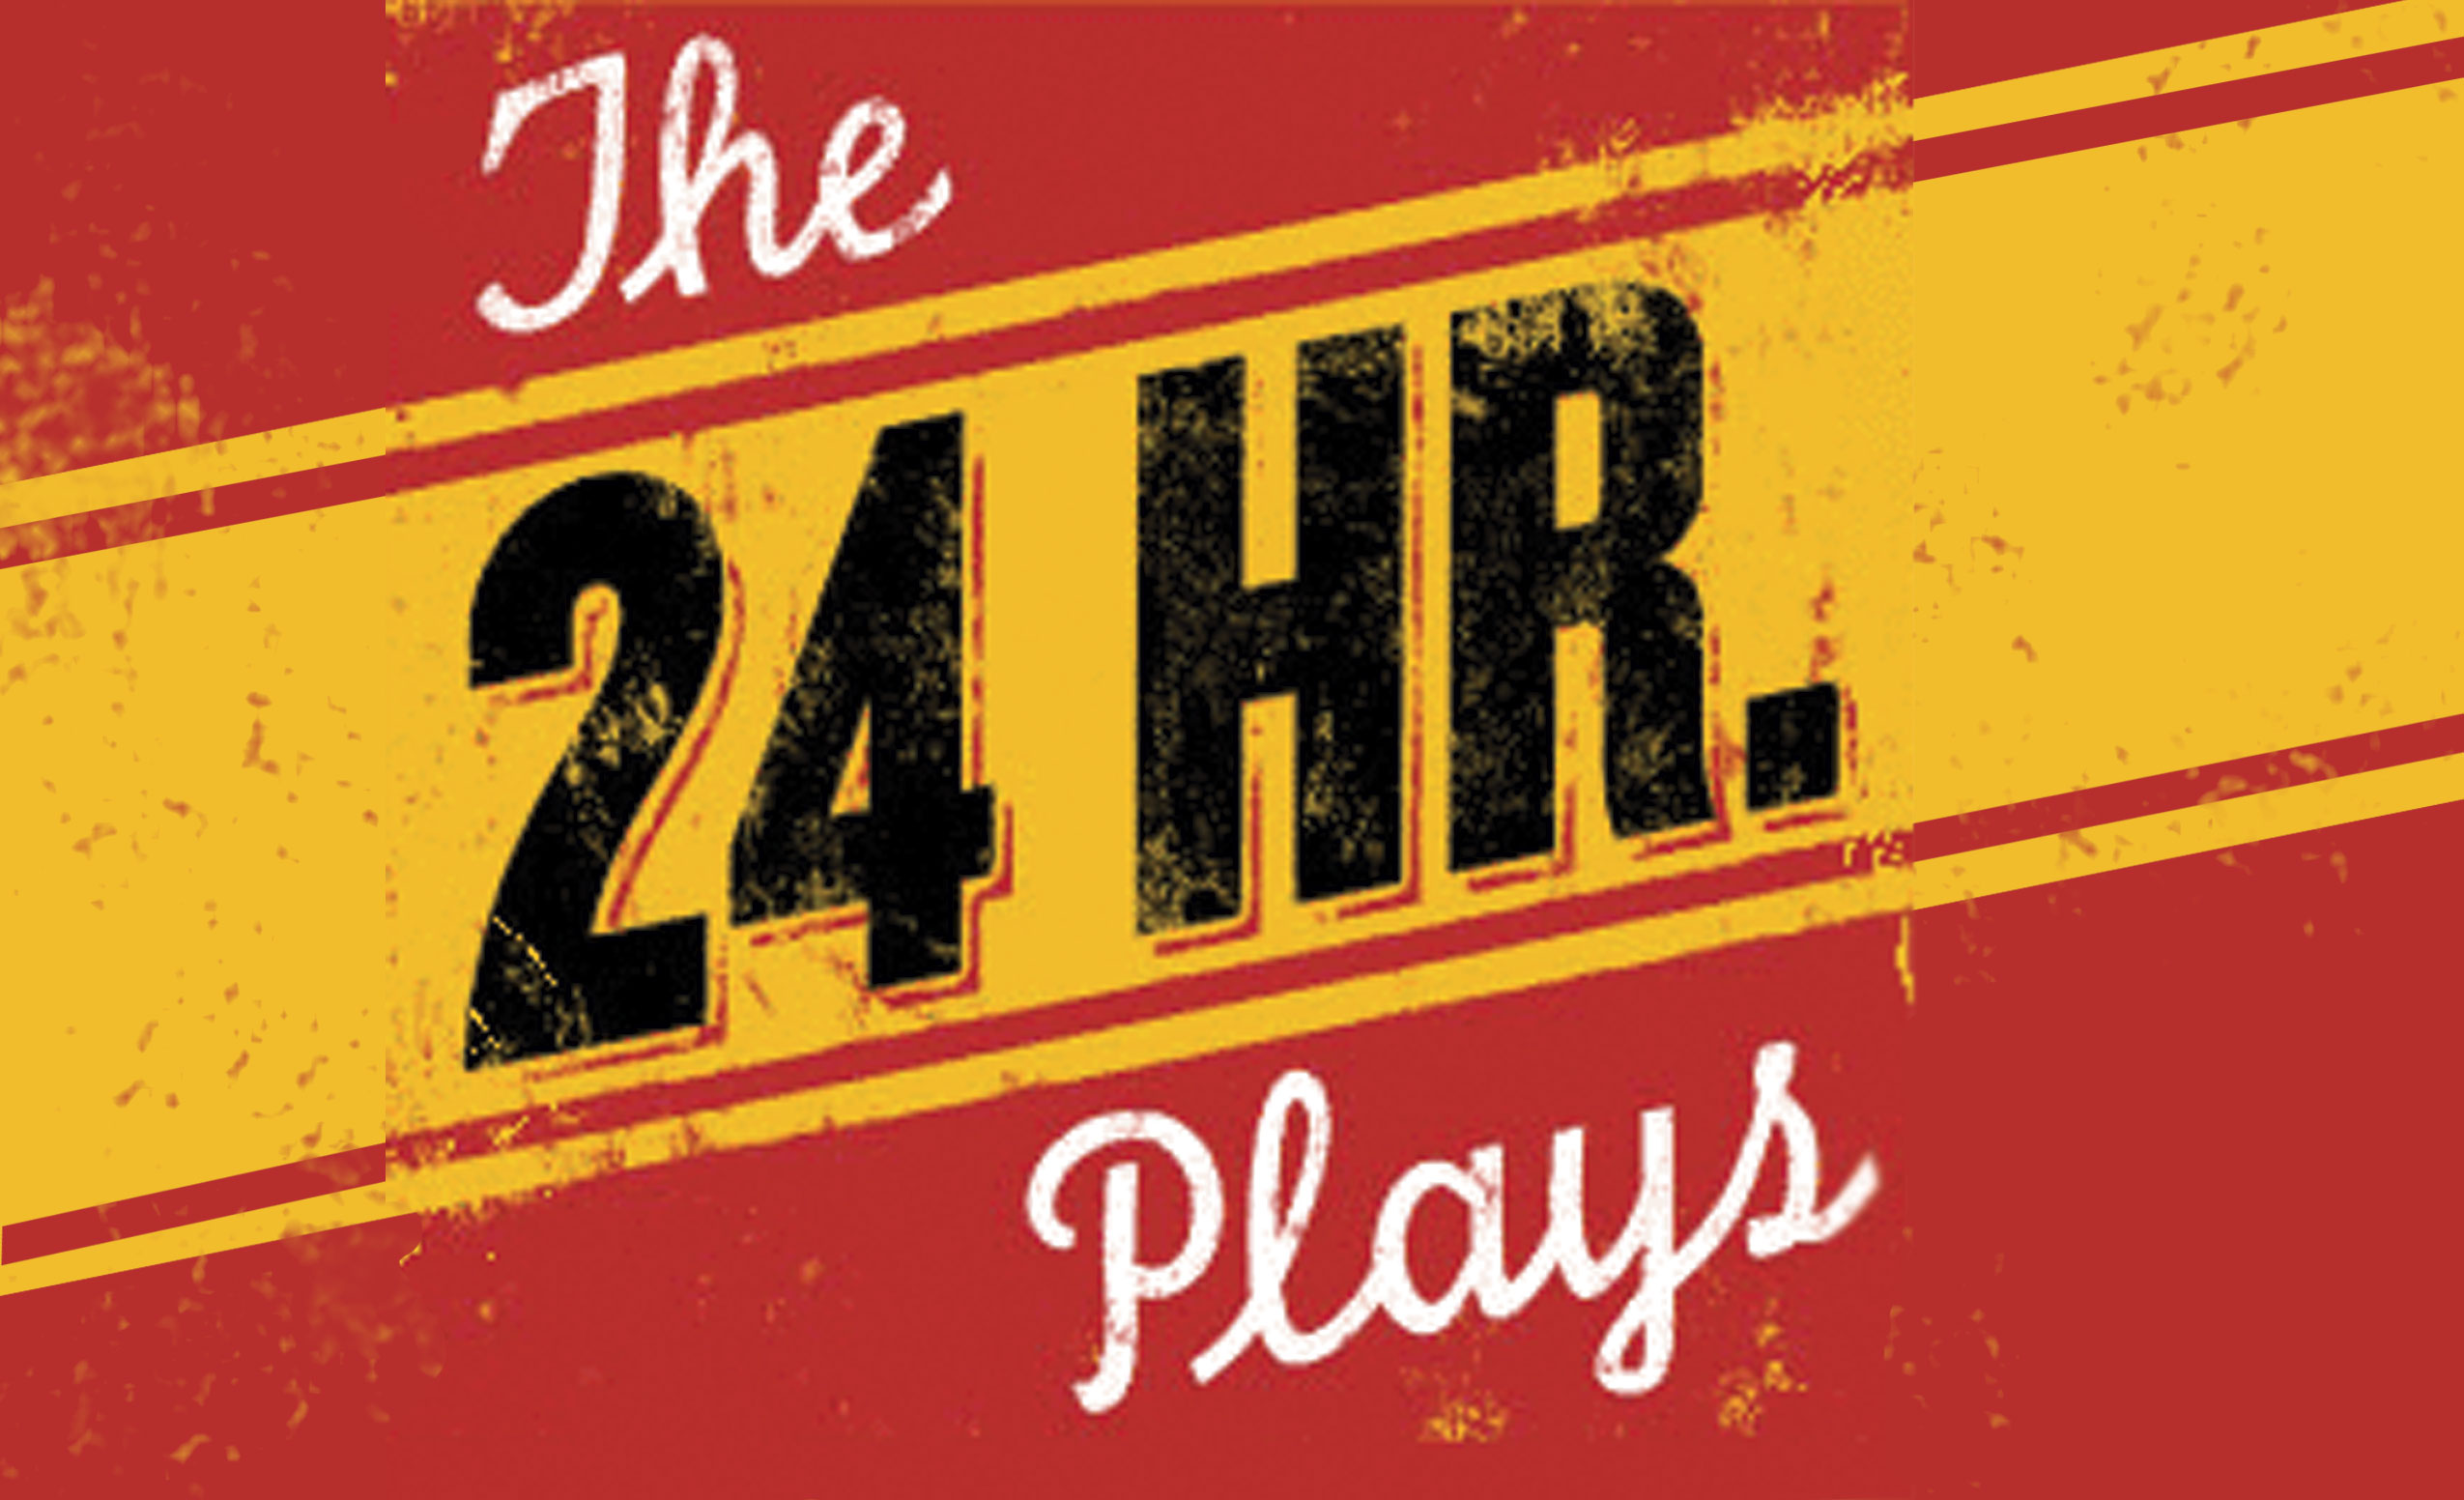 The 24 Hour Plays Festival, January 27-28, 2017